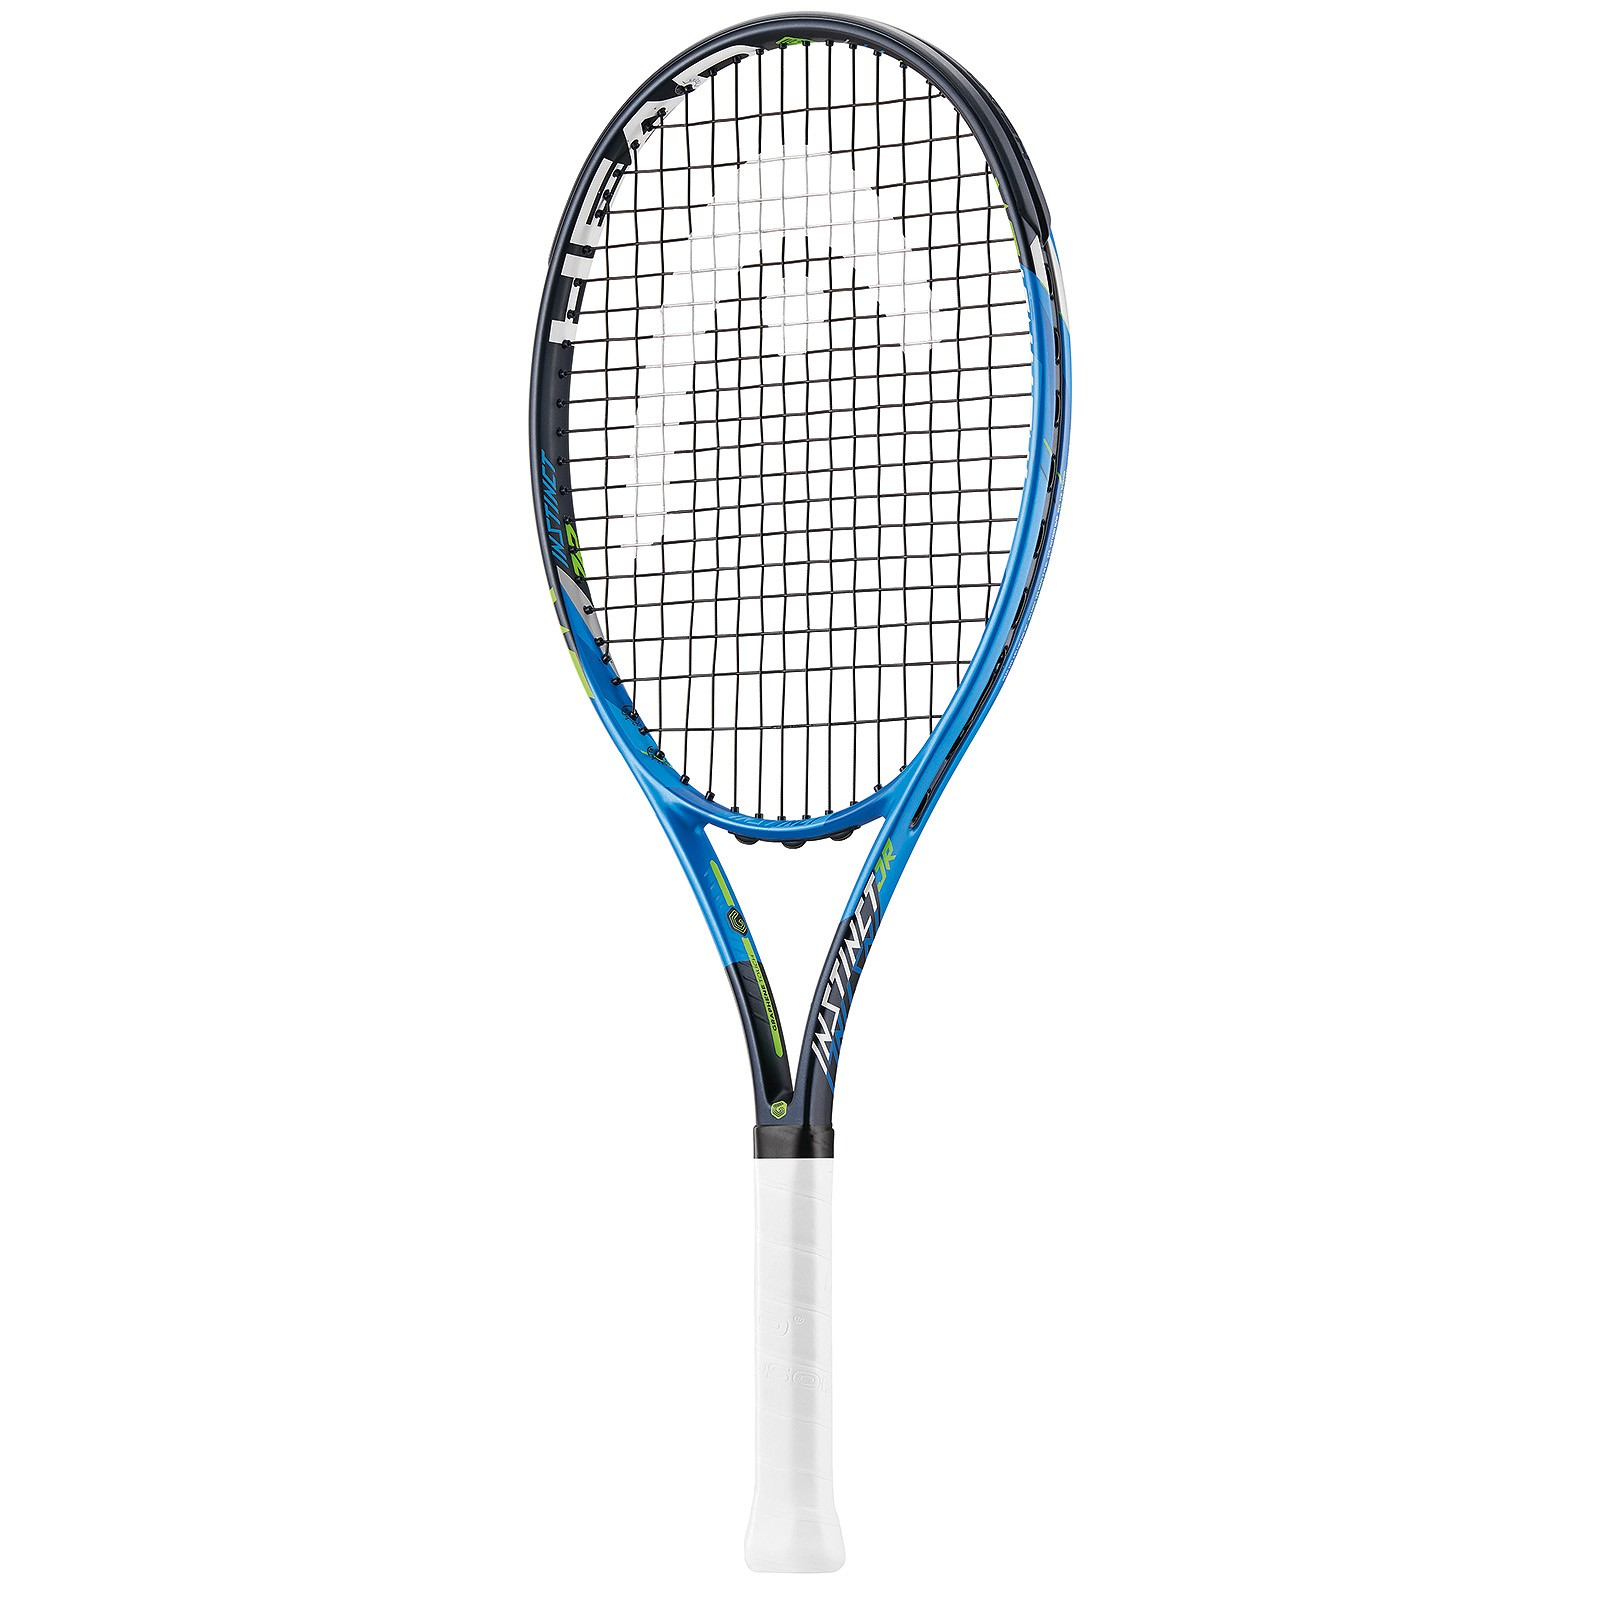 Rakieta tenisowa Head Graphene Touch Instinct Junior